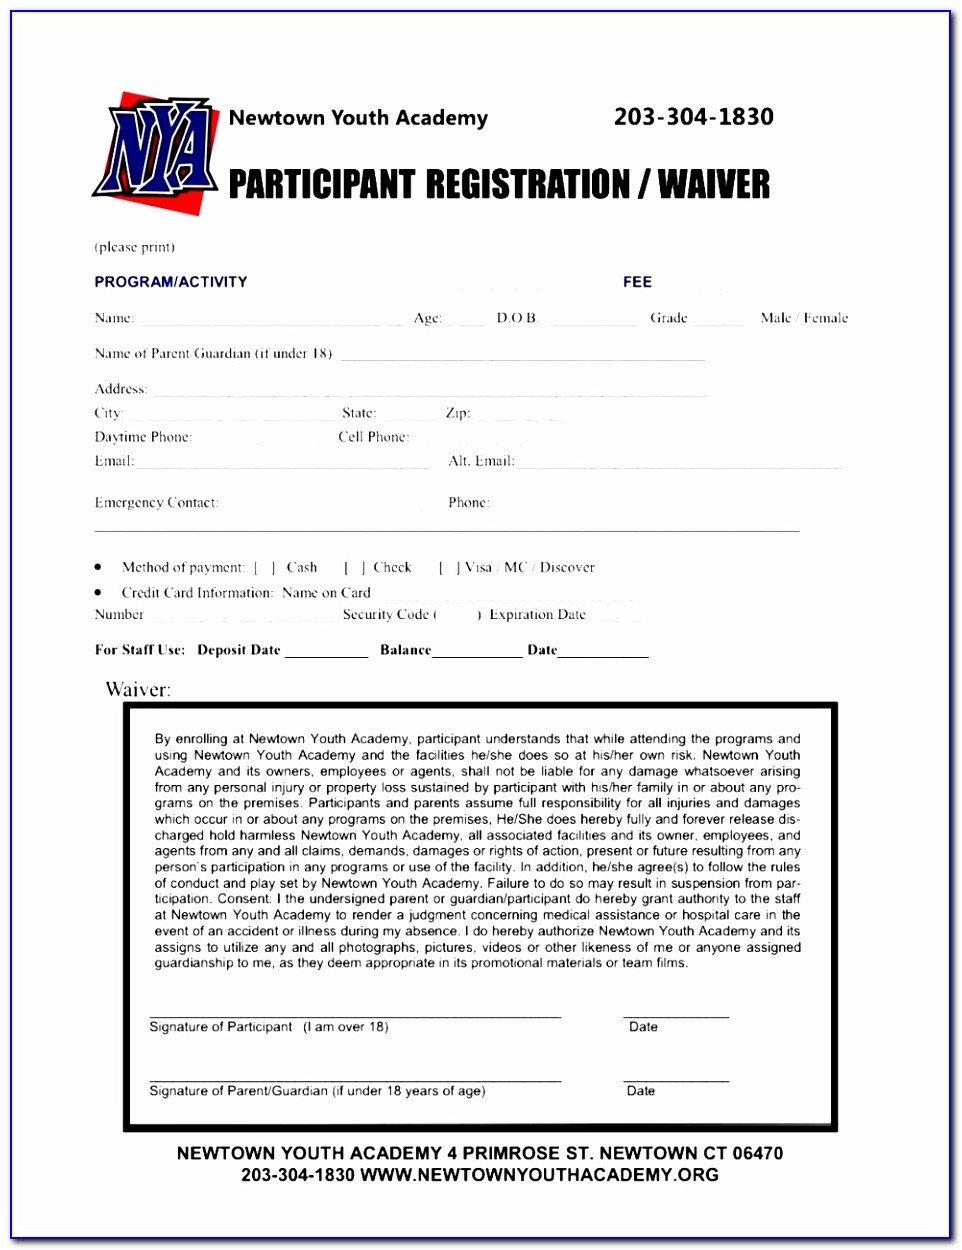 4 Baseball Registration Form Template Fabtemplatez Fabtemplatez Printable Baseball Registration Form Template Unique Pdf Word Excel Templates Ouatj